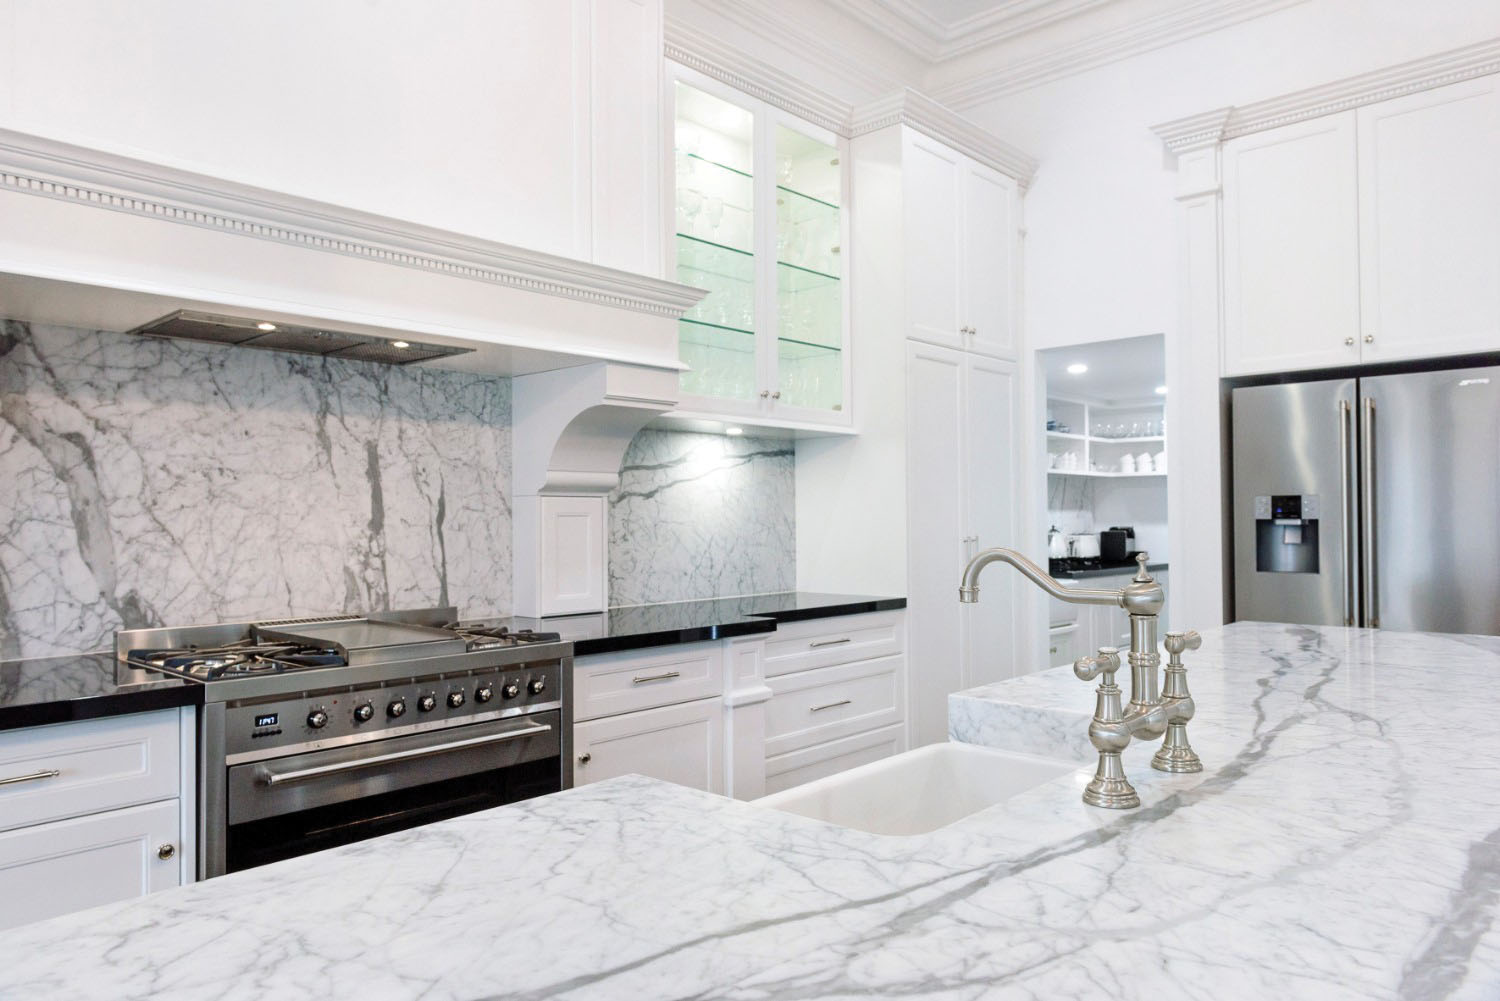 Grandiose Symmetry: a luxurious Adelaide kitchen